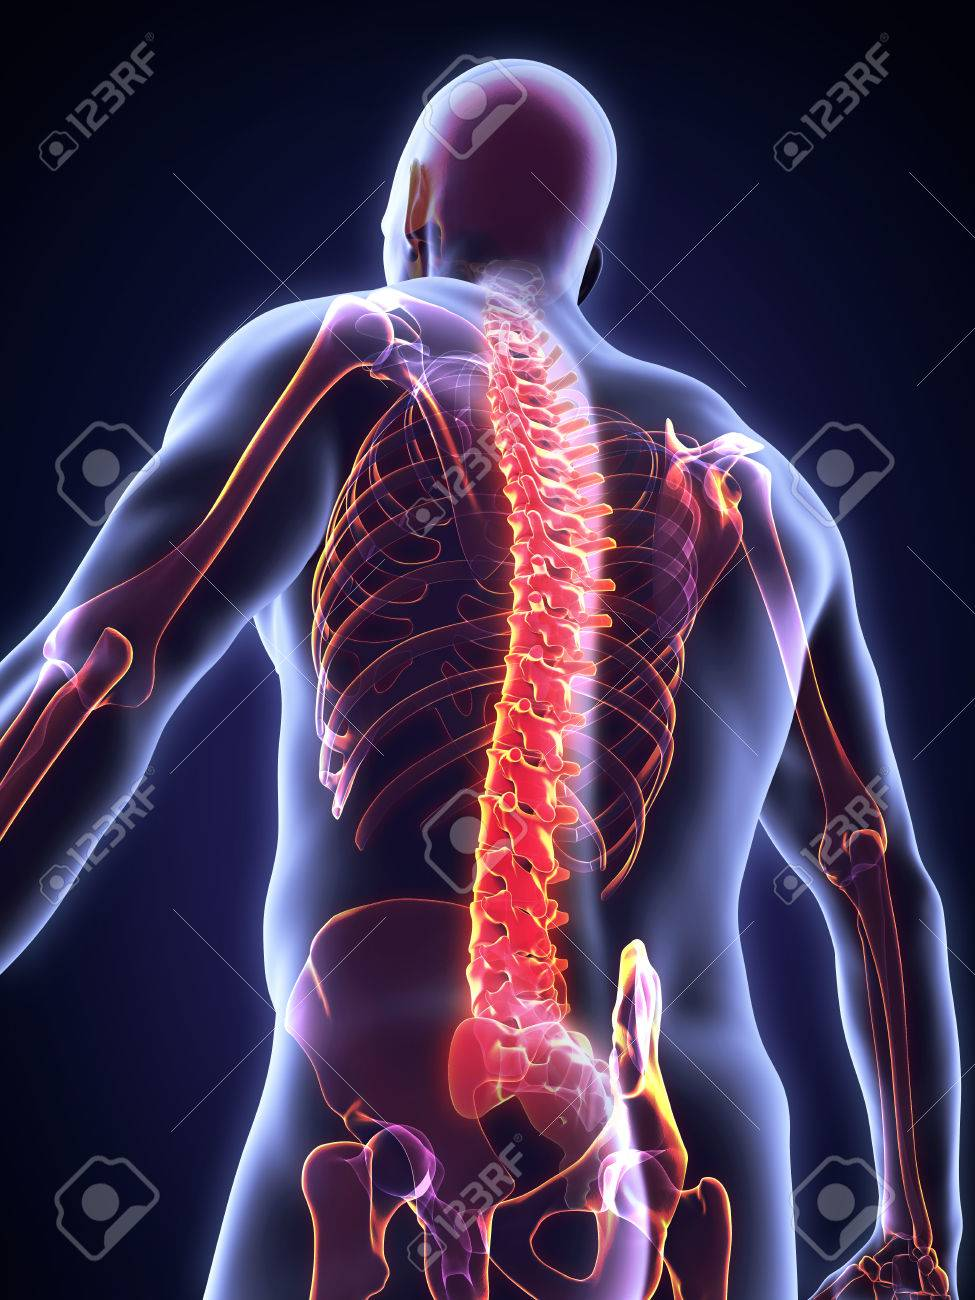 Human Male Spine Anatomy Stock Photo, Picture And Royalty Free Image ...